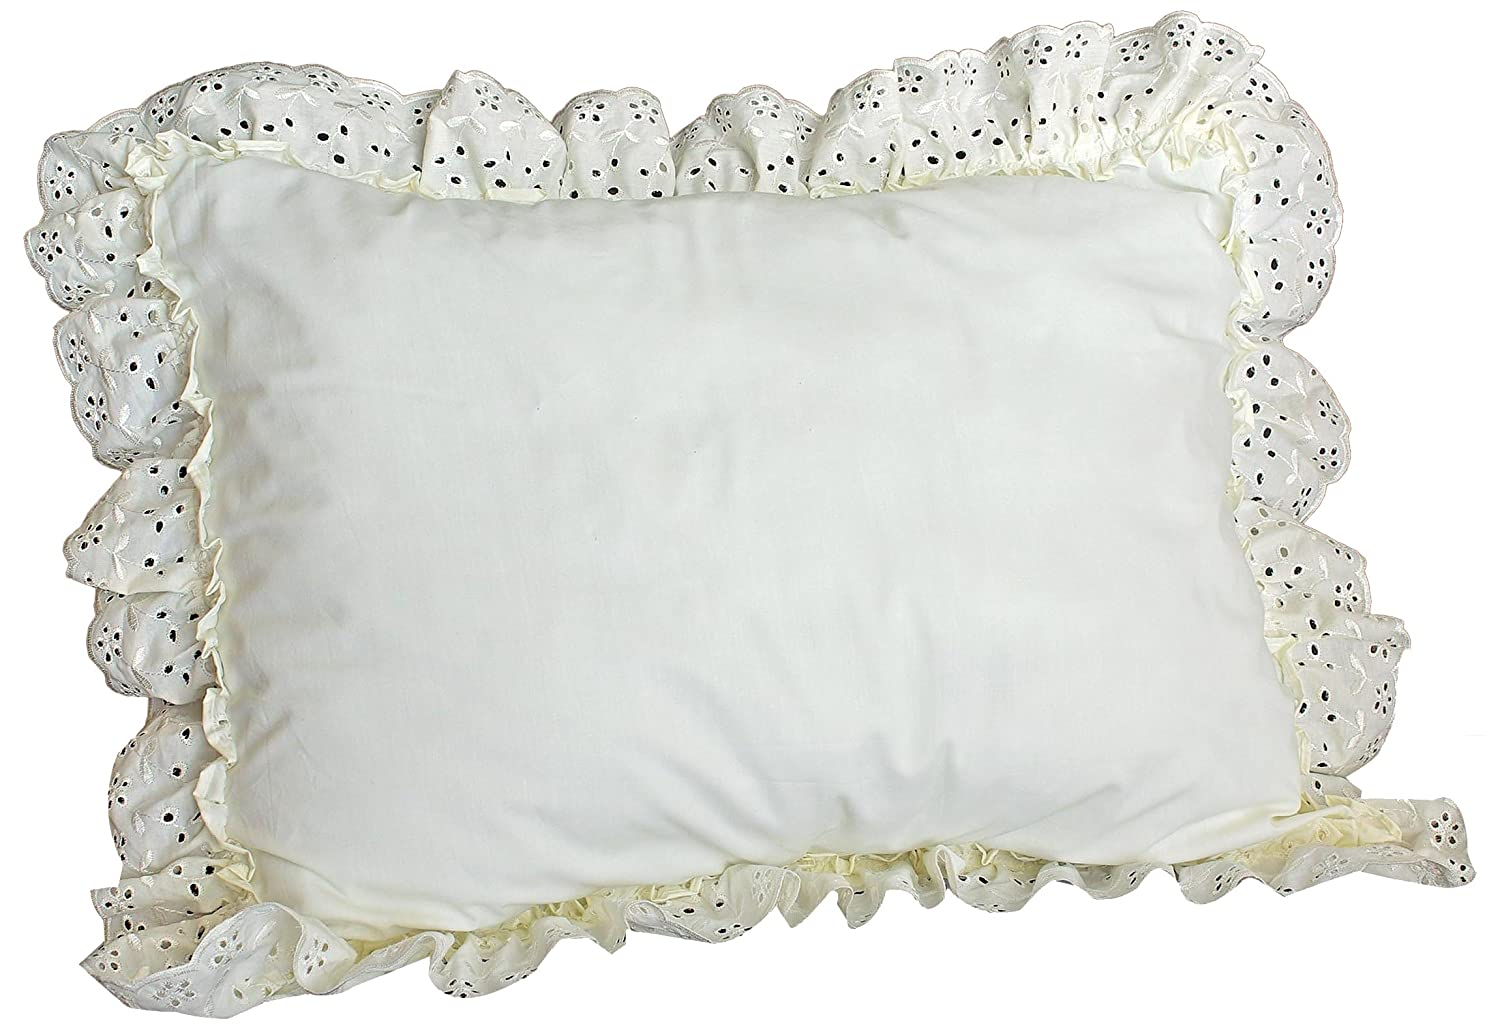 White American Curtain and Home Deanna 20-Inch by 26-Inch Pillow Sham Standard